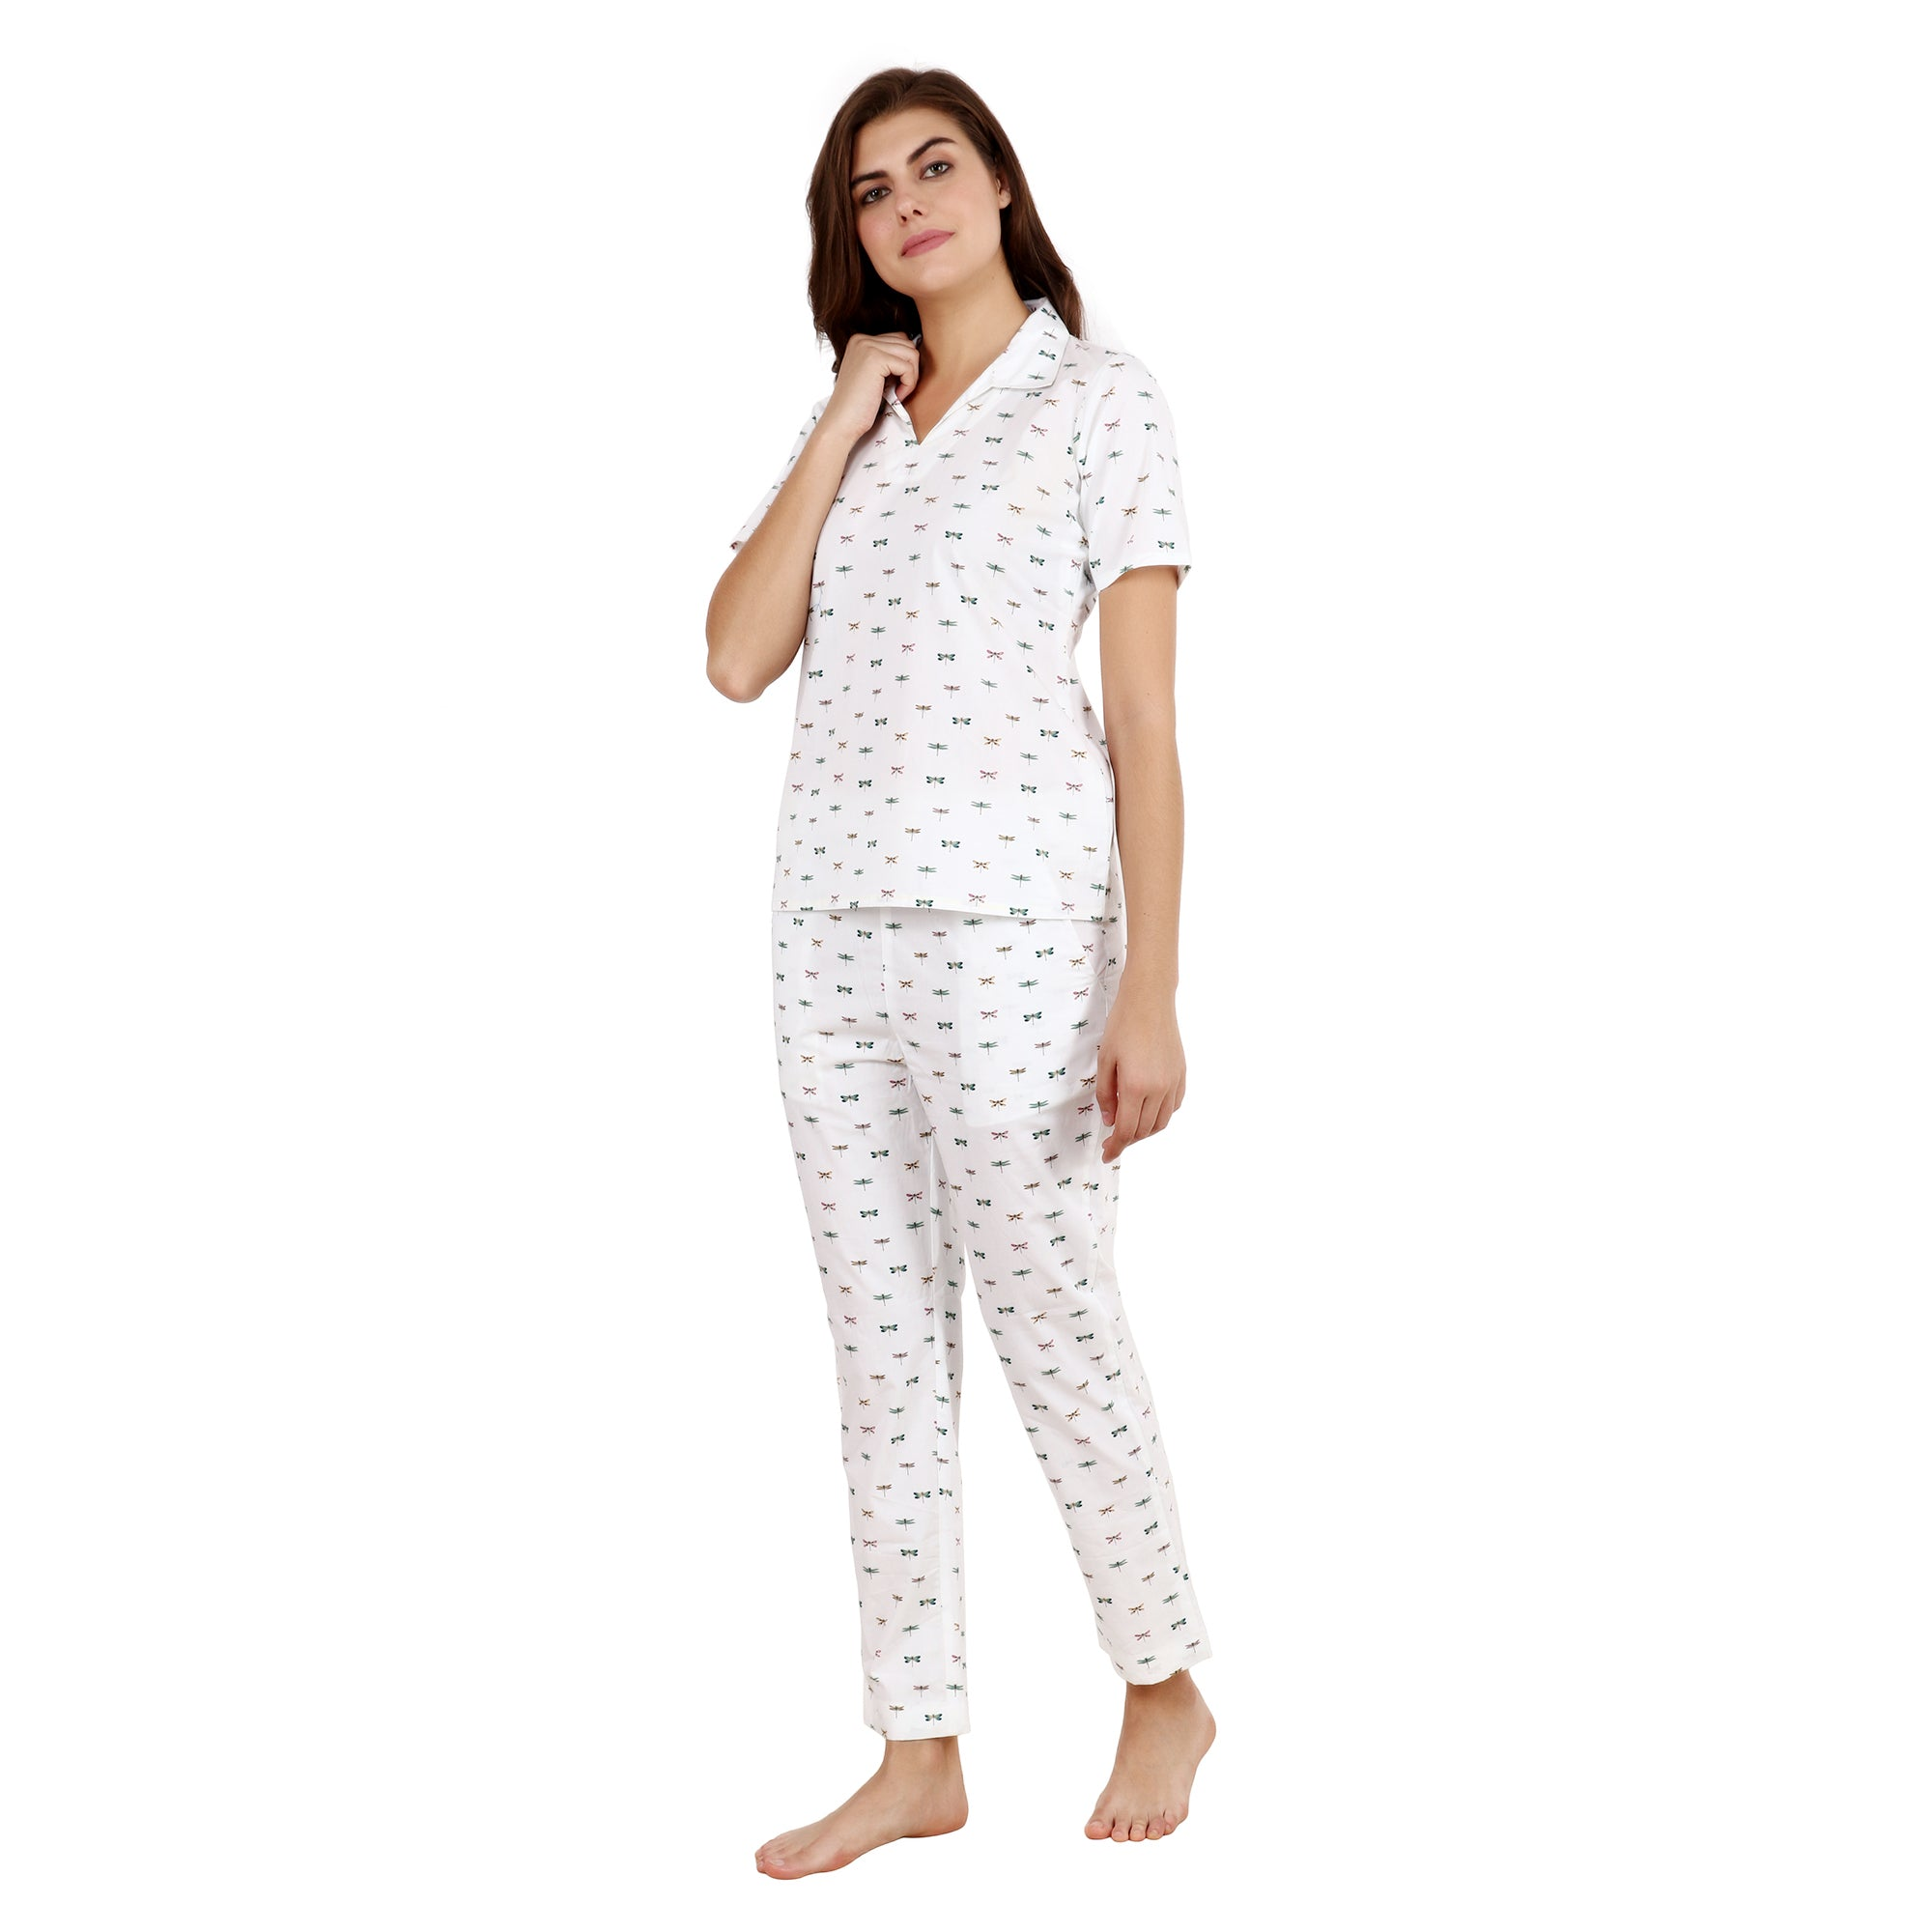 all size, all sizes night suits, apella, BEIGE, best online store, BLUE, COLLAR, cotton night suit, DOUBLE POCKETS, LEMON, lounge wear suits, Mustard, NAVY, navy blue, nigt suits online, Peac